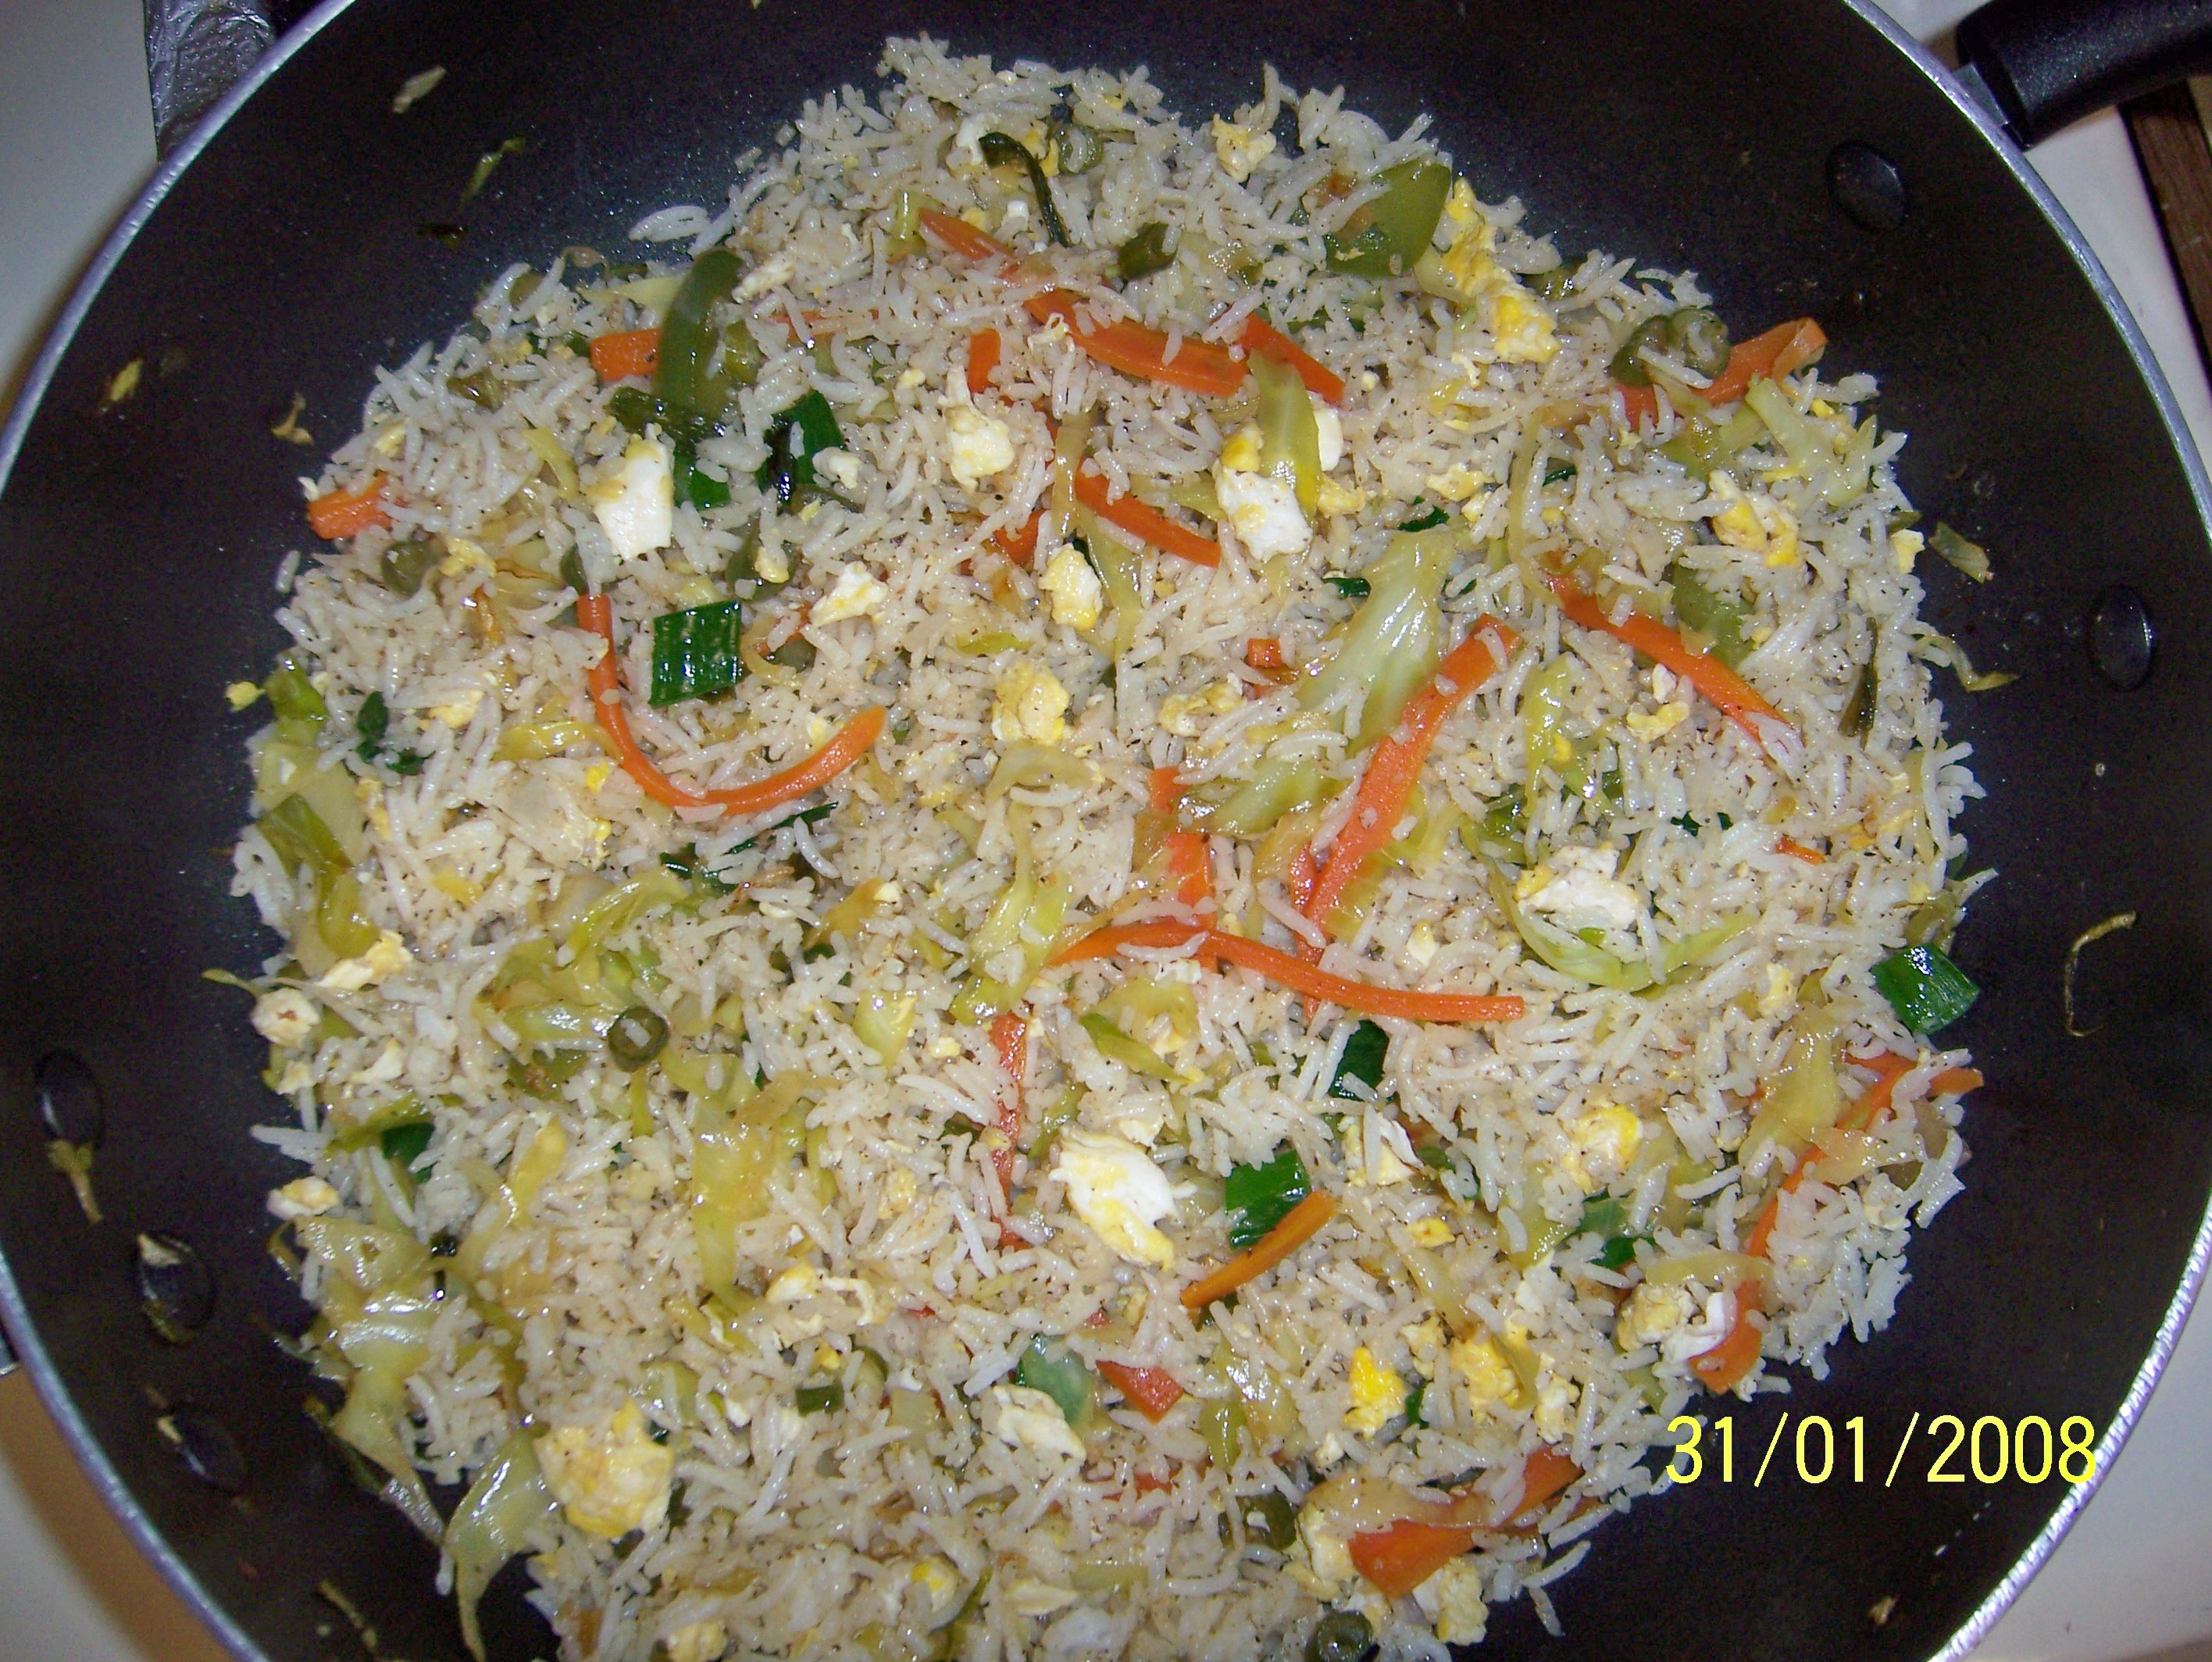 Fried rice with vegetables and eggs recipesbnb vegetable and egg fried rice recipe by jayashree ifood ccuart Images